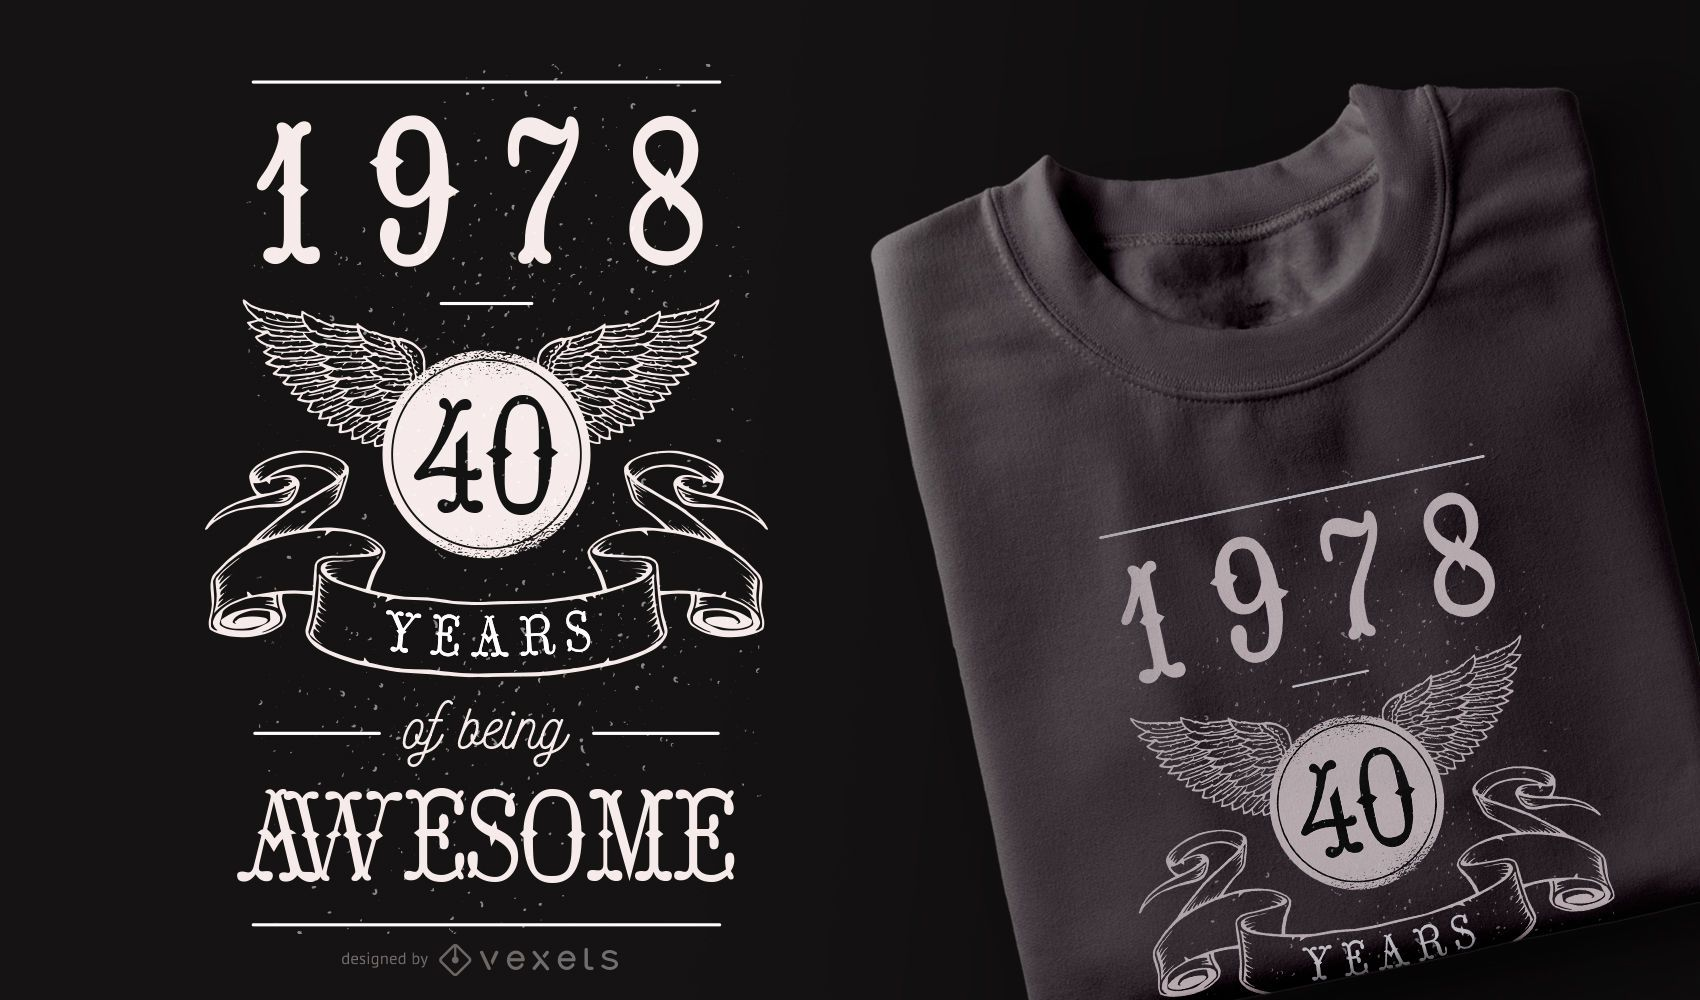 40 Years Awesome t-shirt design